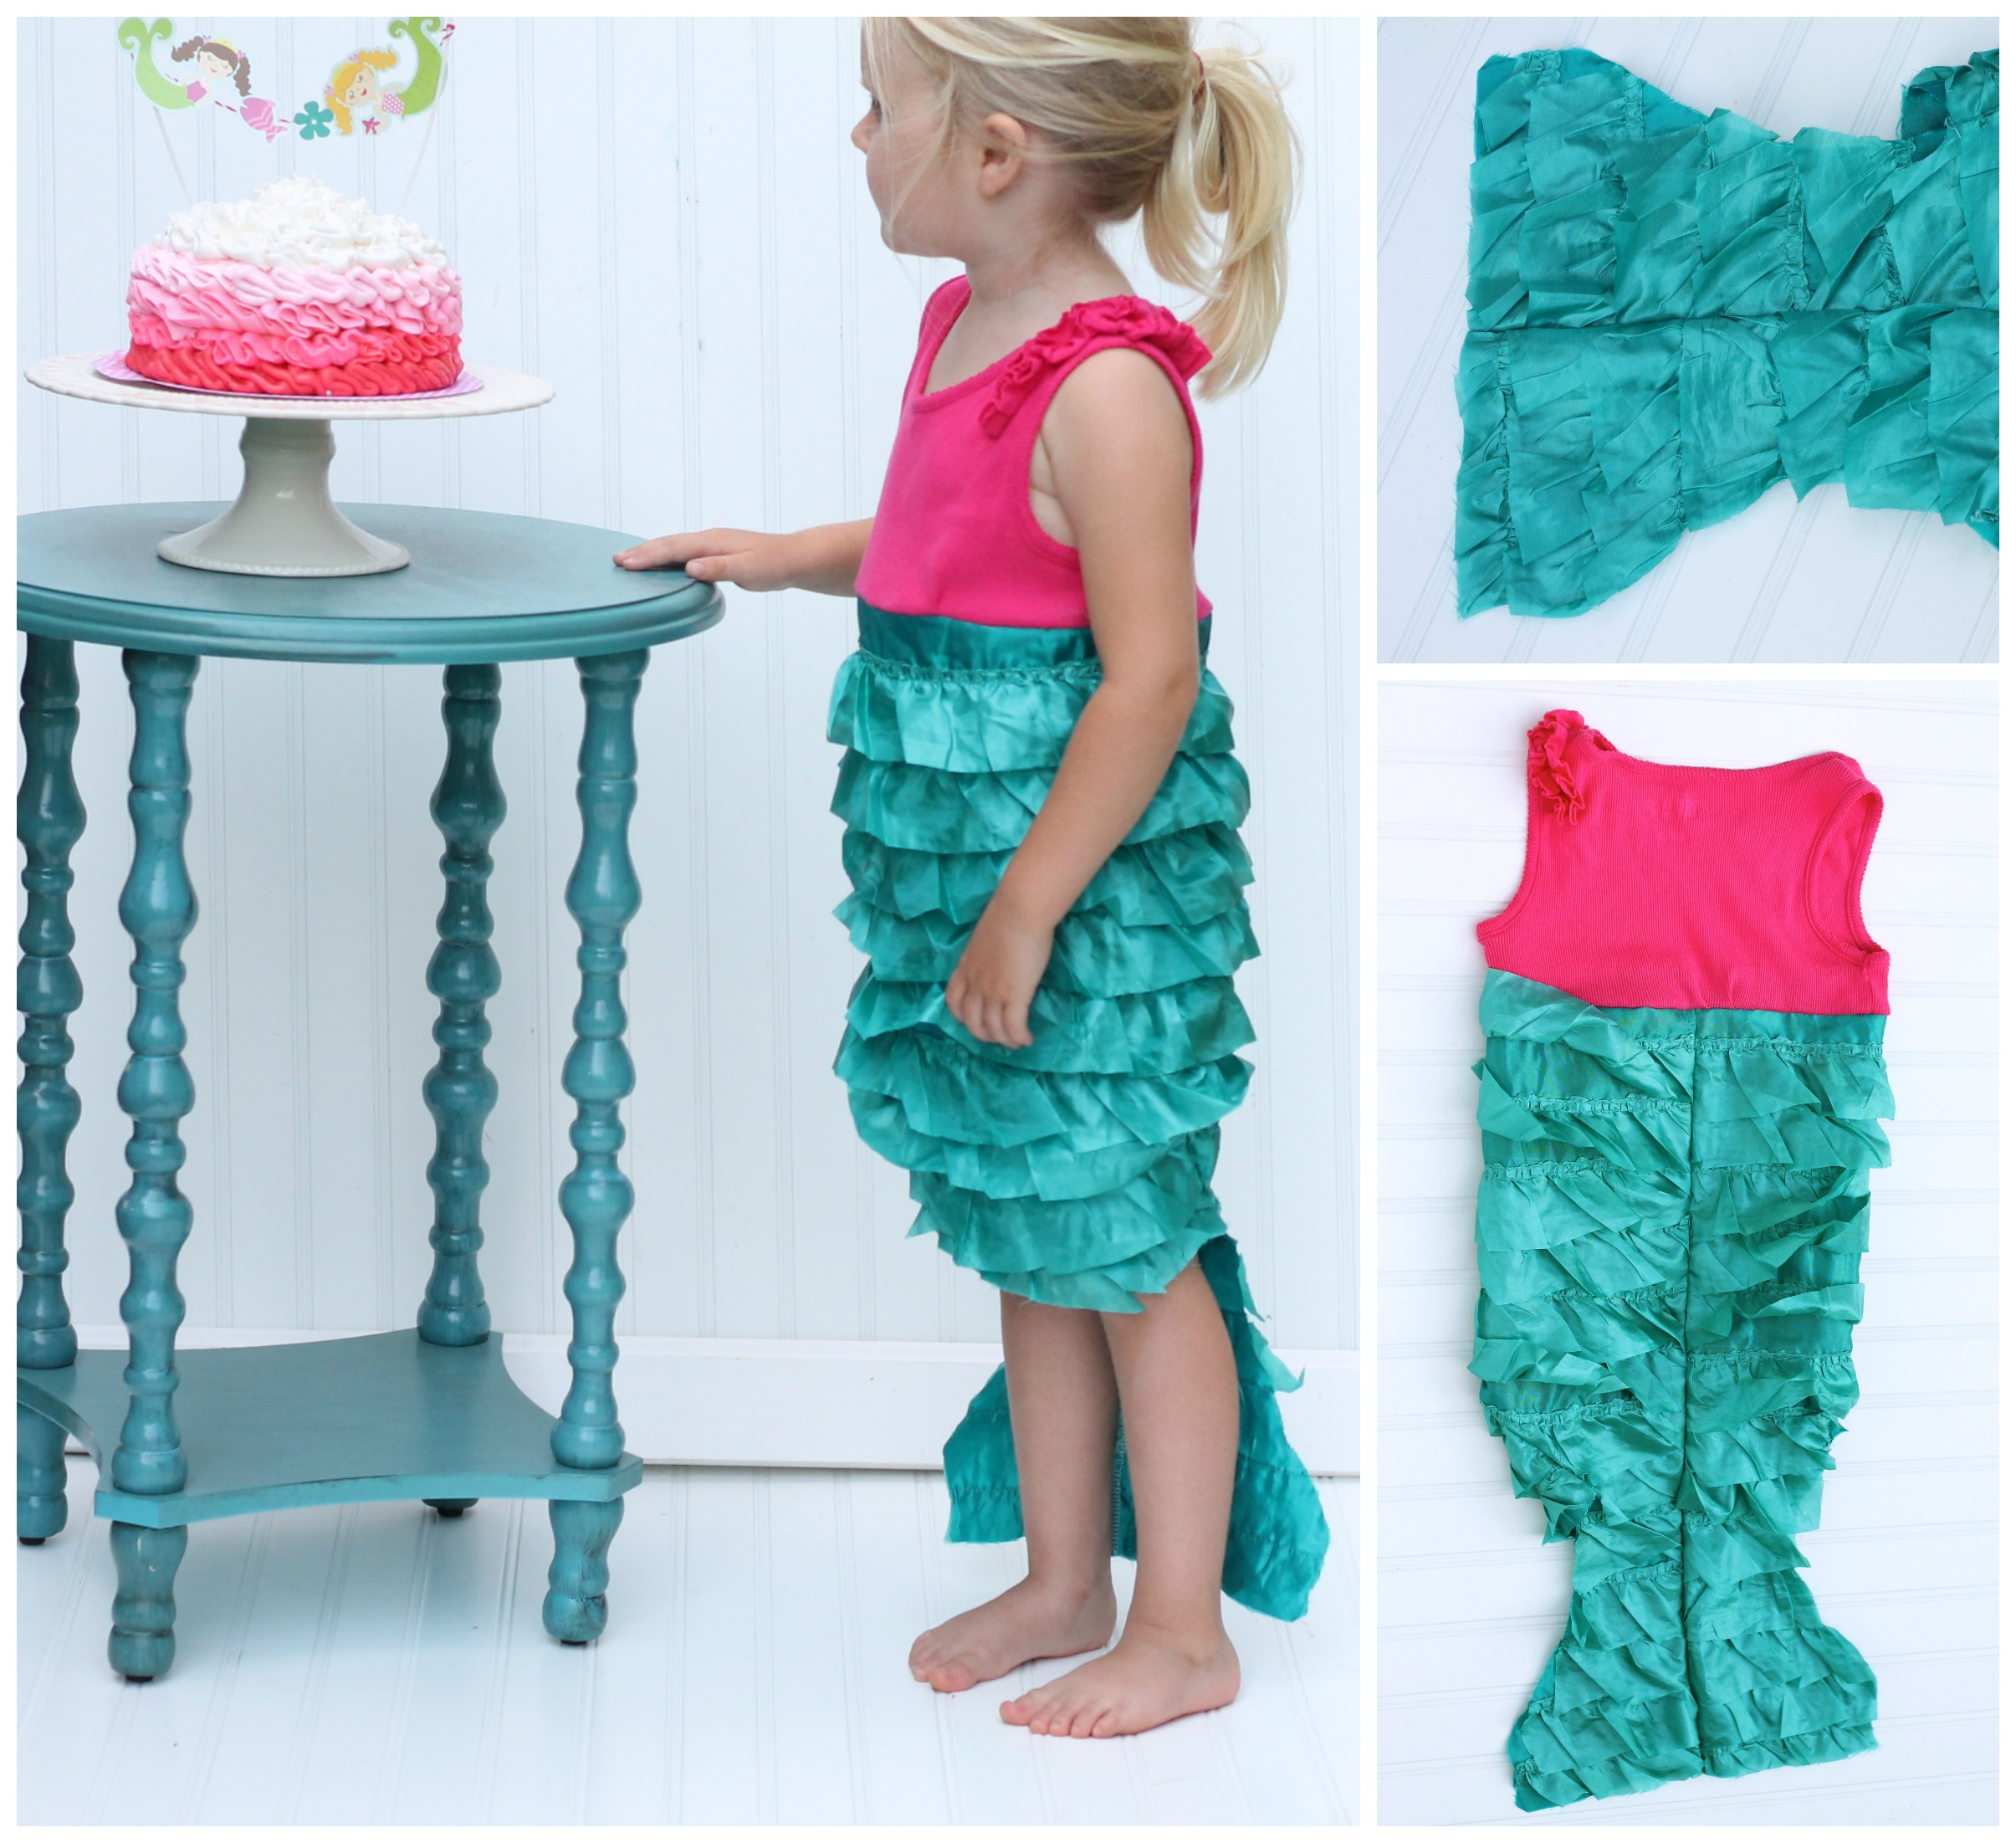 It to an old tank top and sewed it into a mermaid shaped dress